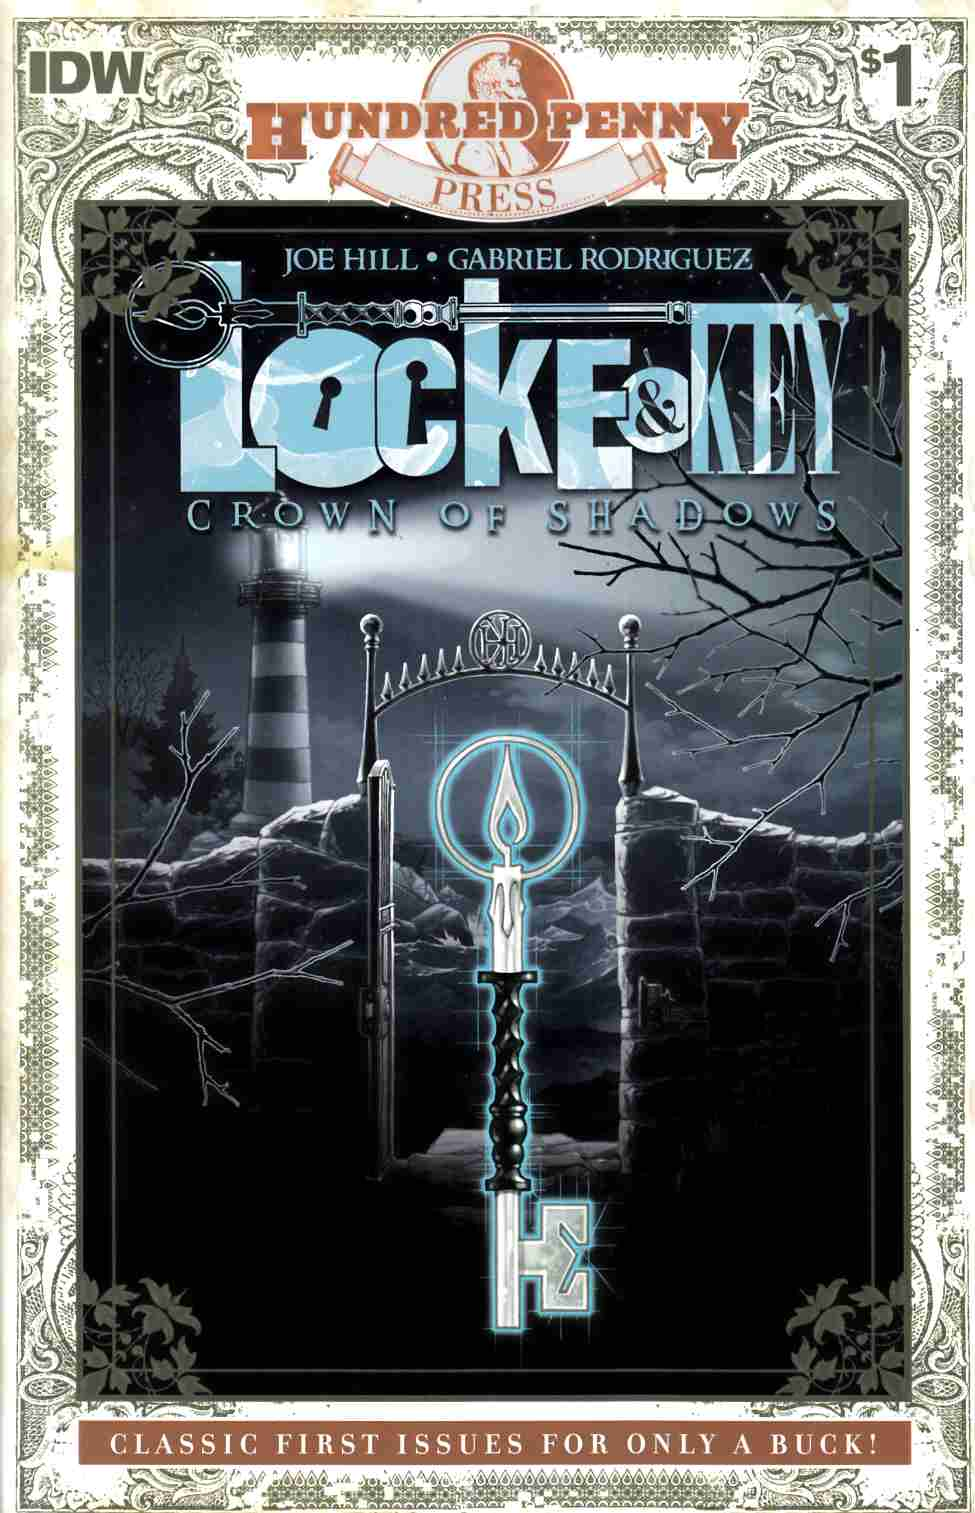 Locke & Key Crown of Shadows #1 100 Penny Press Edition [IDW Comic] THUMBNAIL